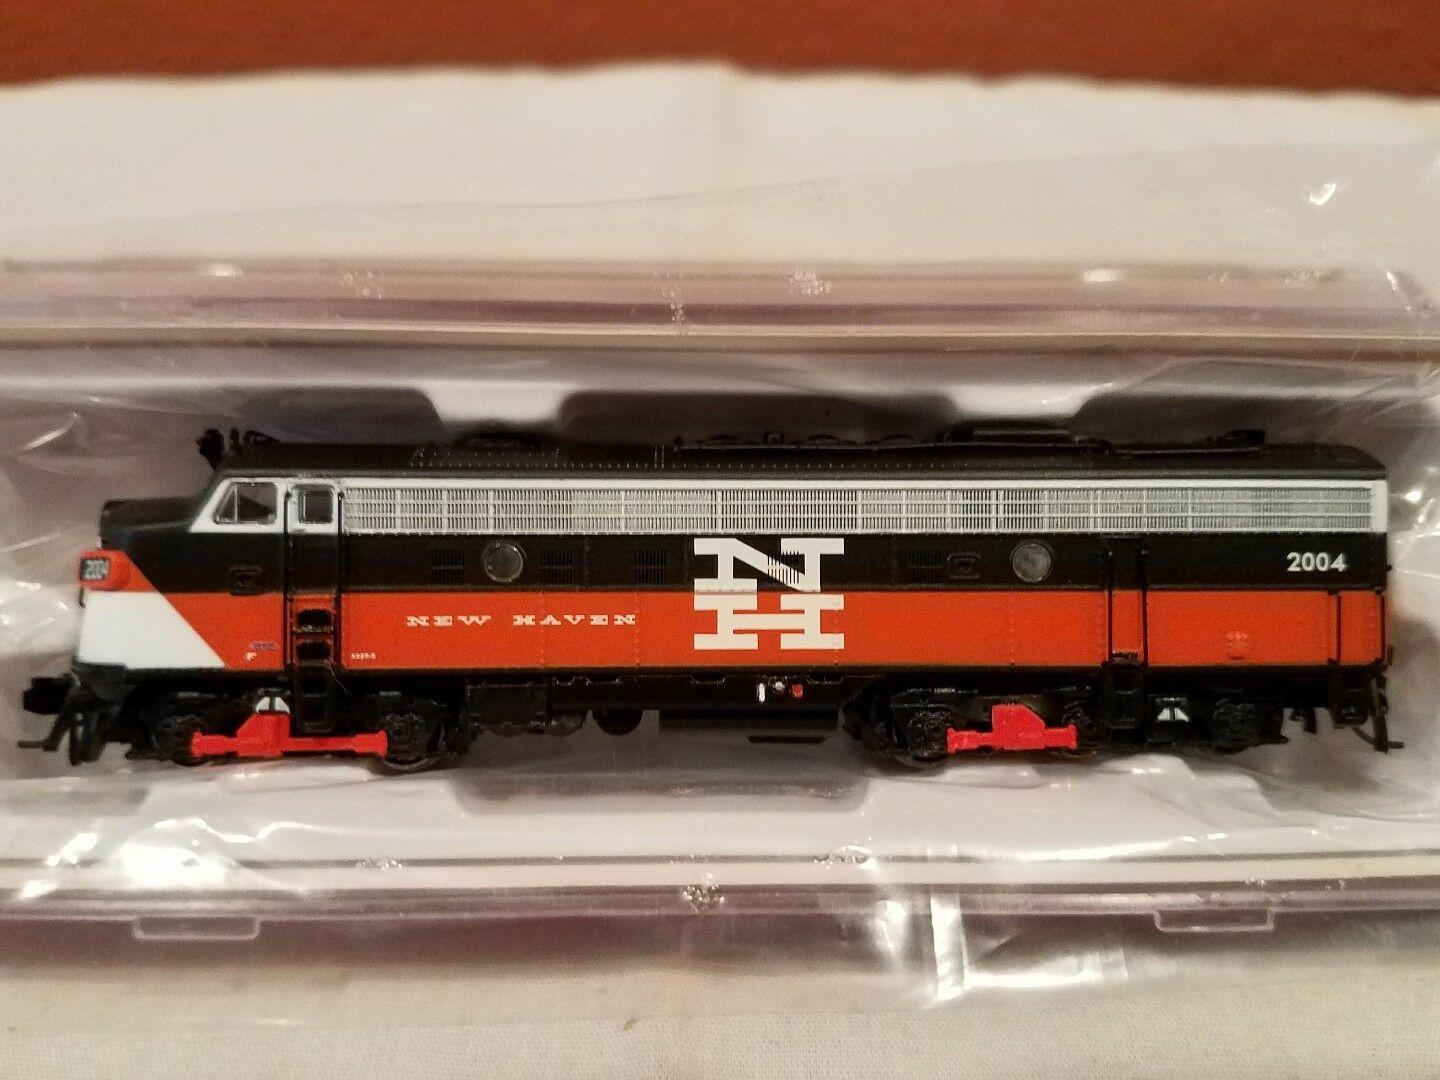 N SCALE RAPIDO TRAINS 15510 EMD FL9 NH EDER-5 RD #2004 DCC SOUND EQUIPPED NEW